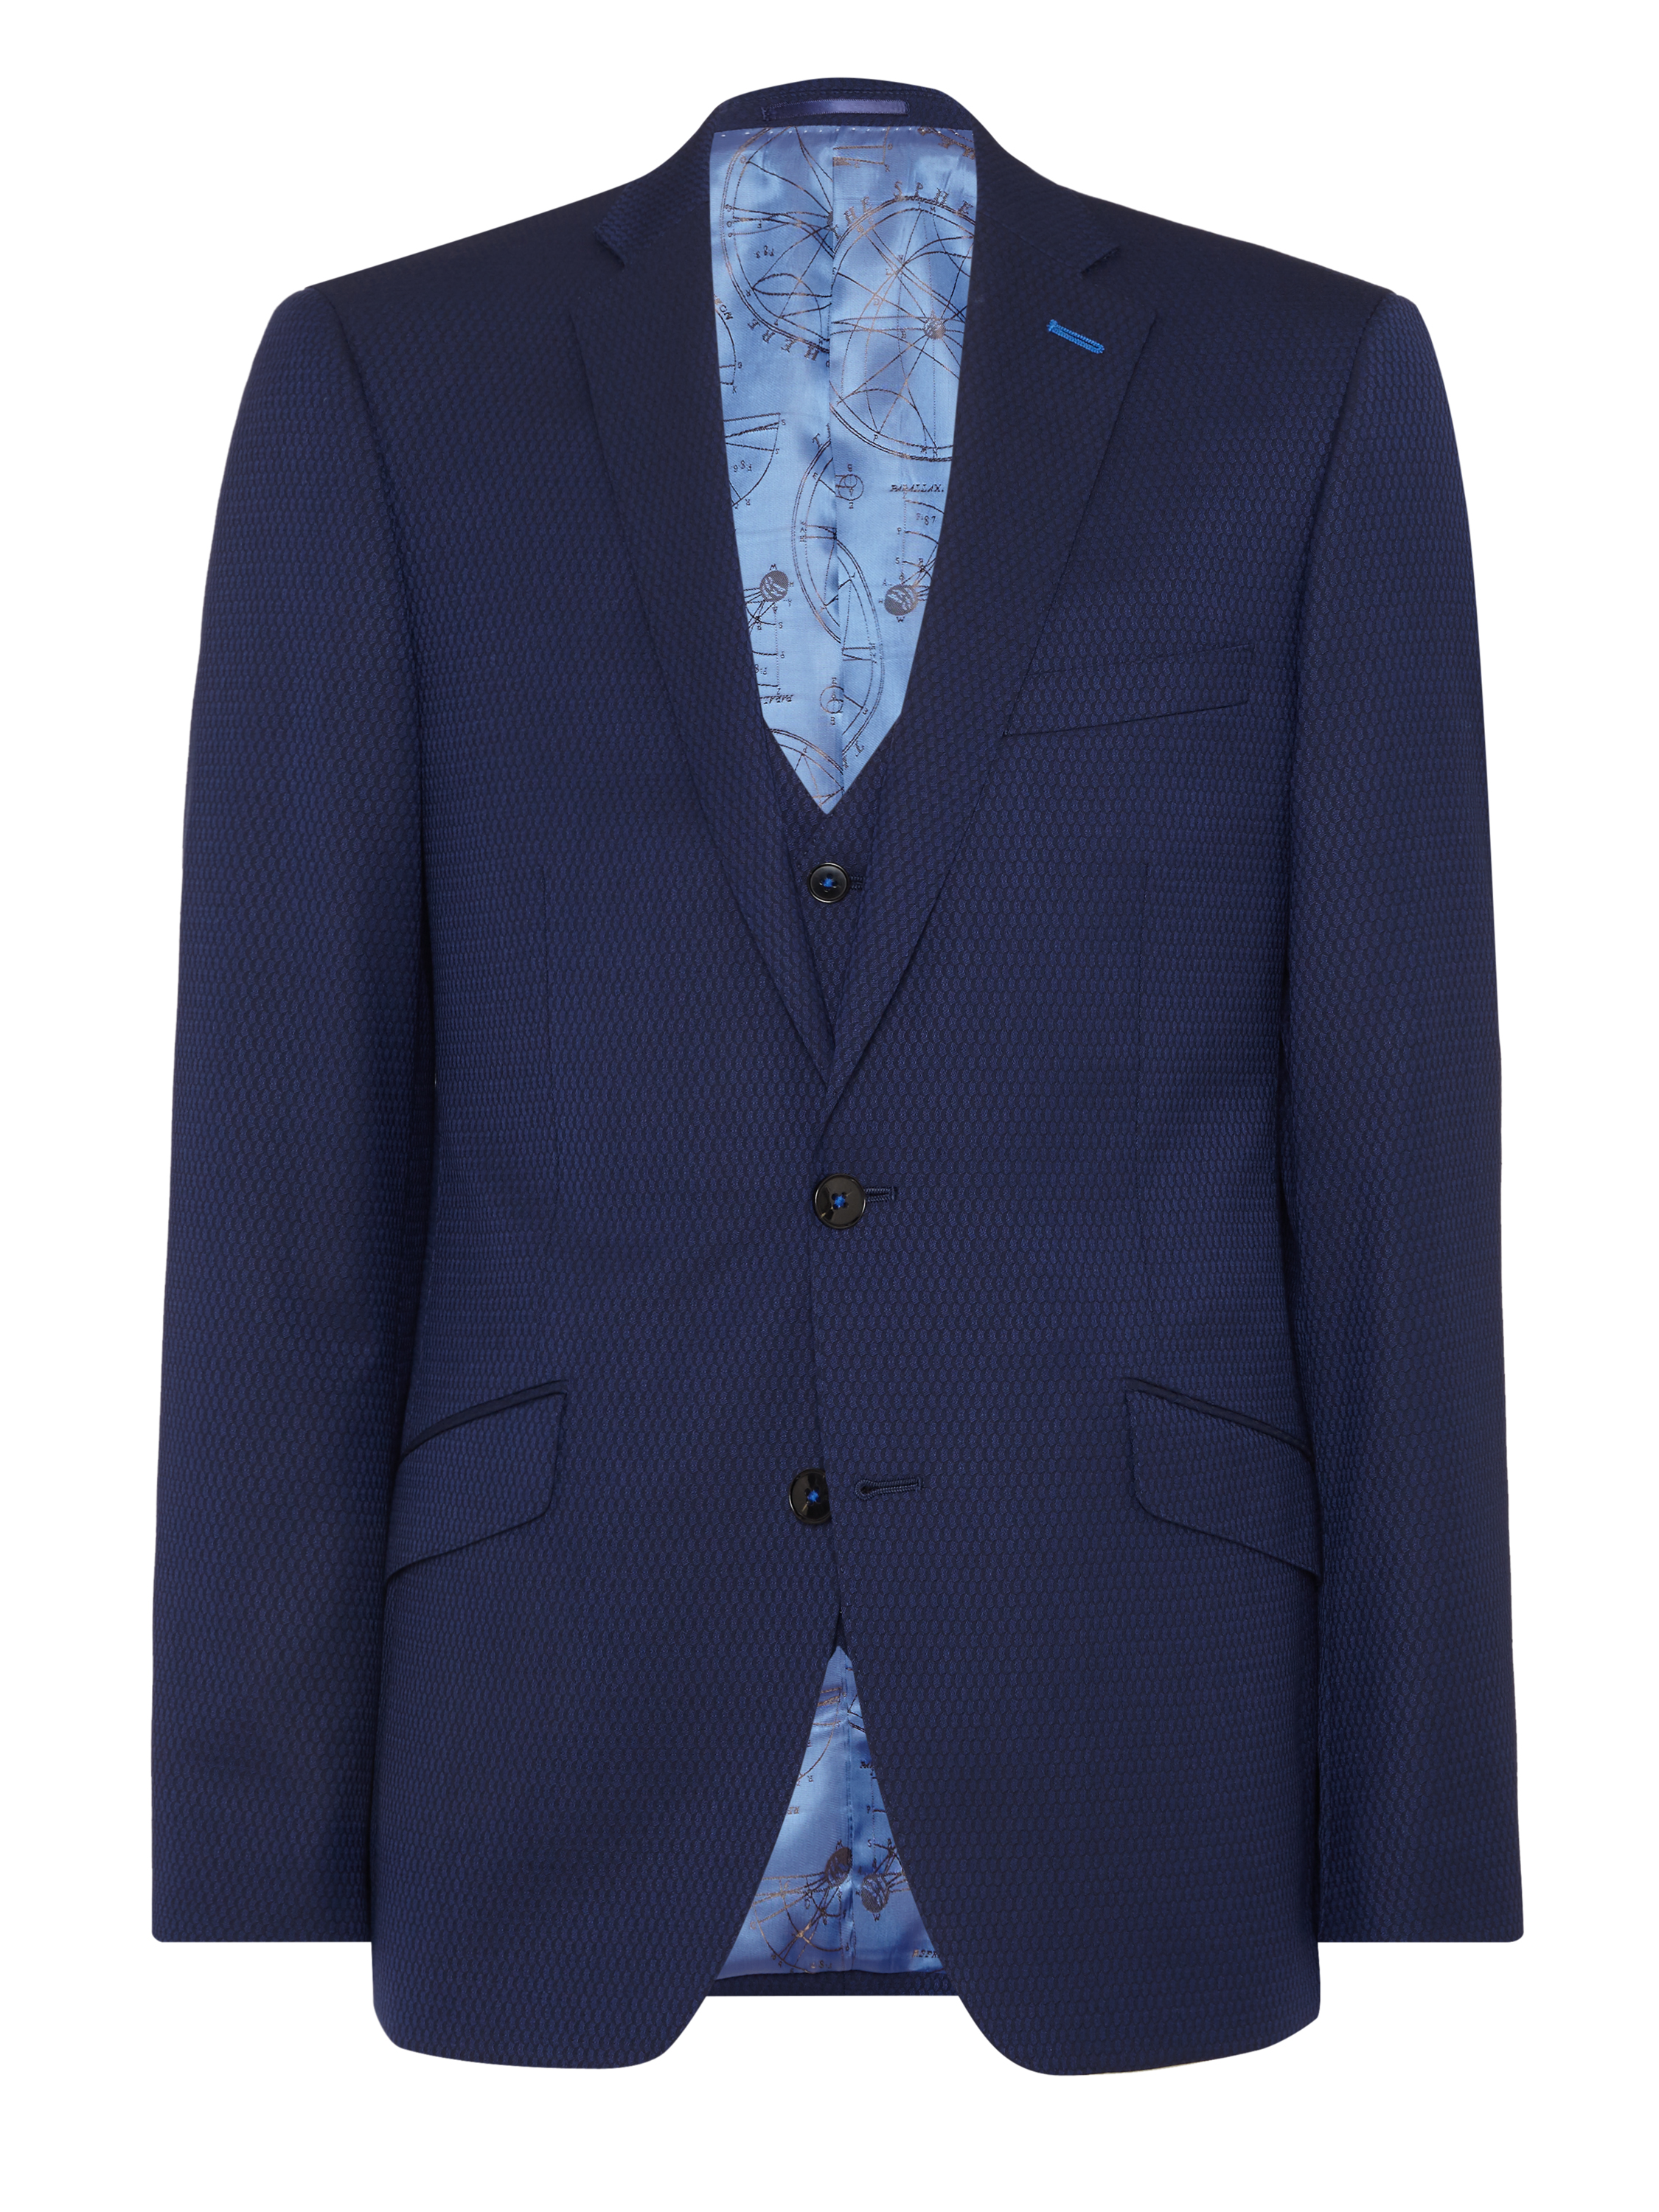 Tapered fit wool-rich mix n match suit